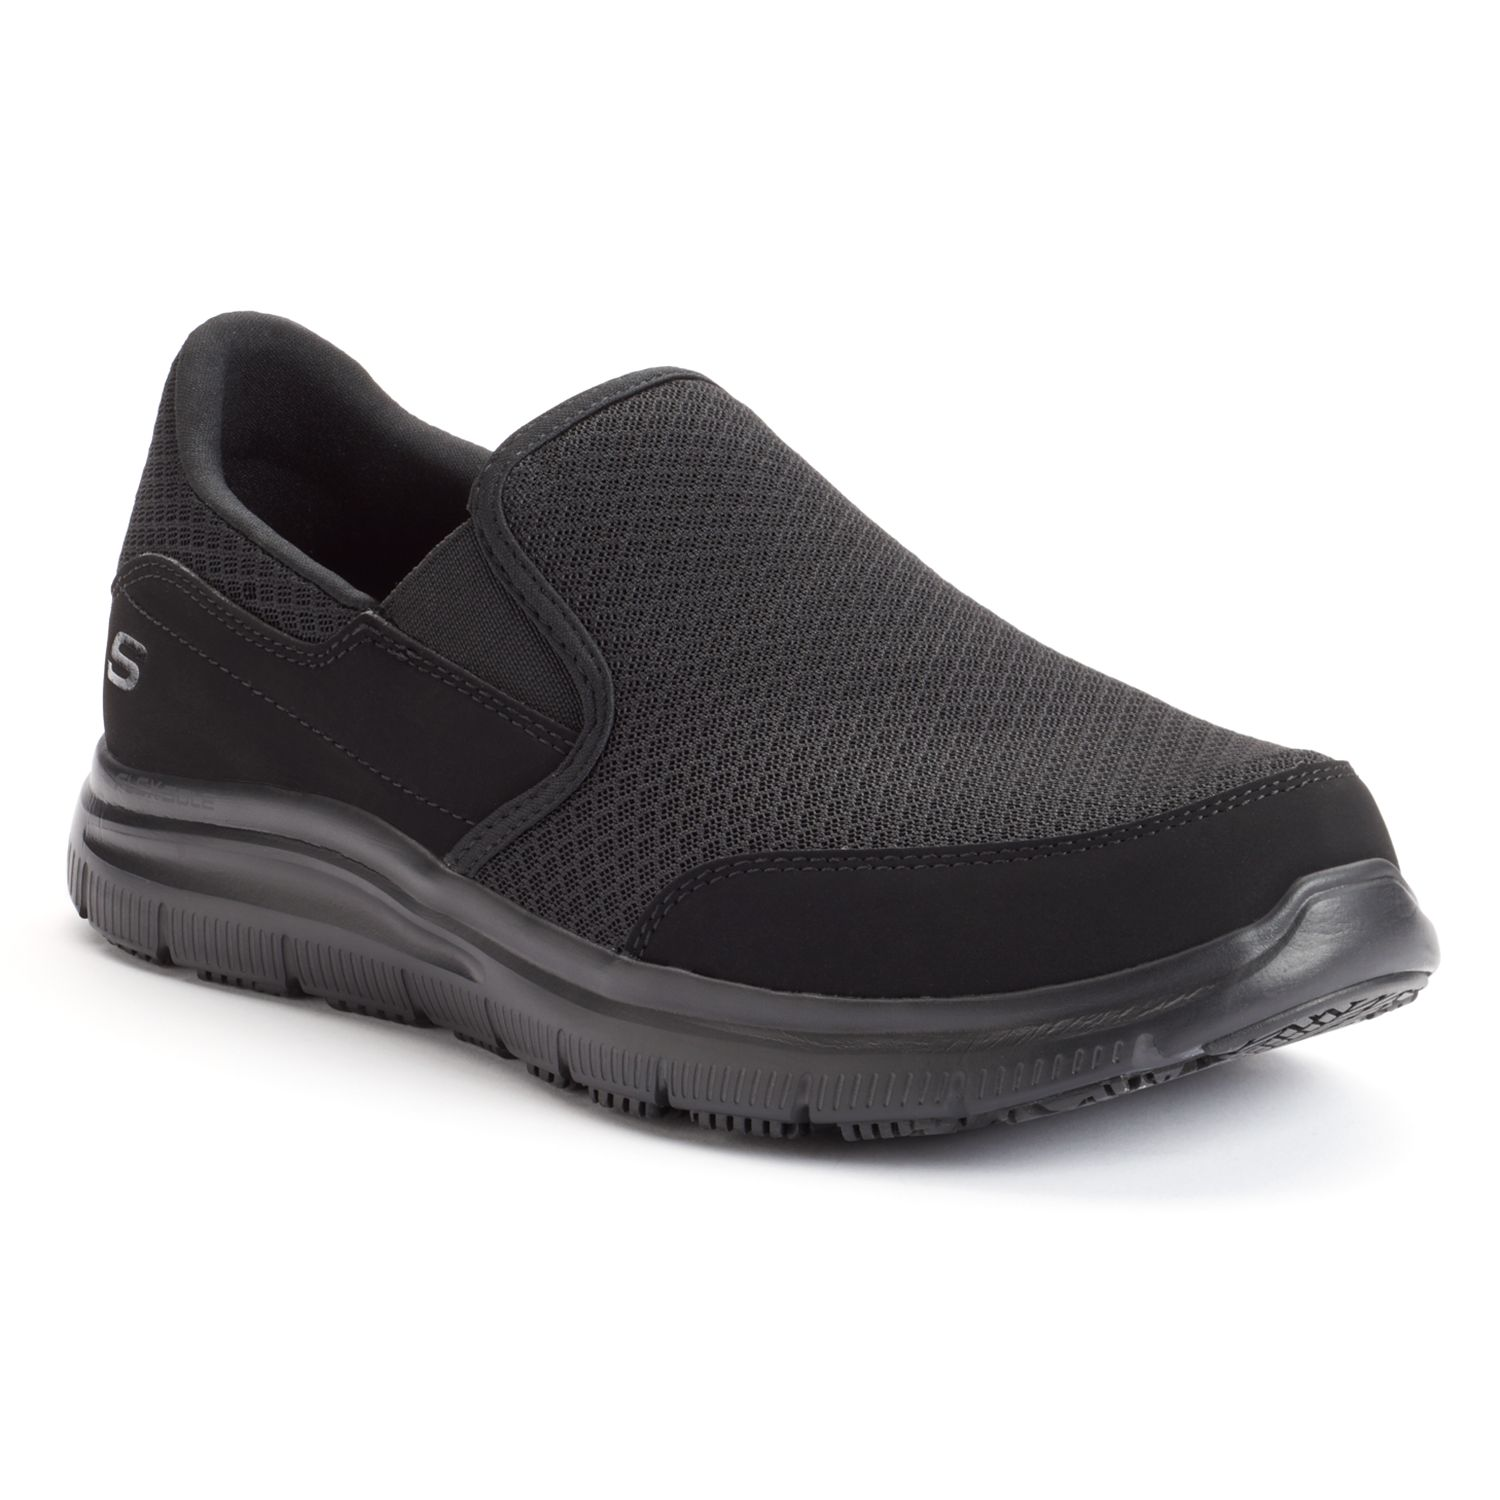 Black Non Slip Shoes Kohls